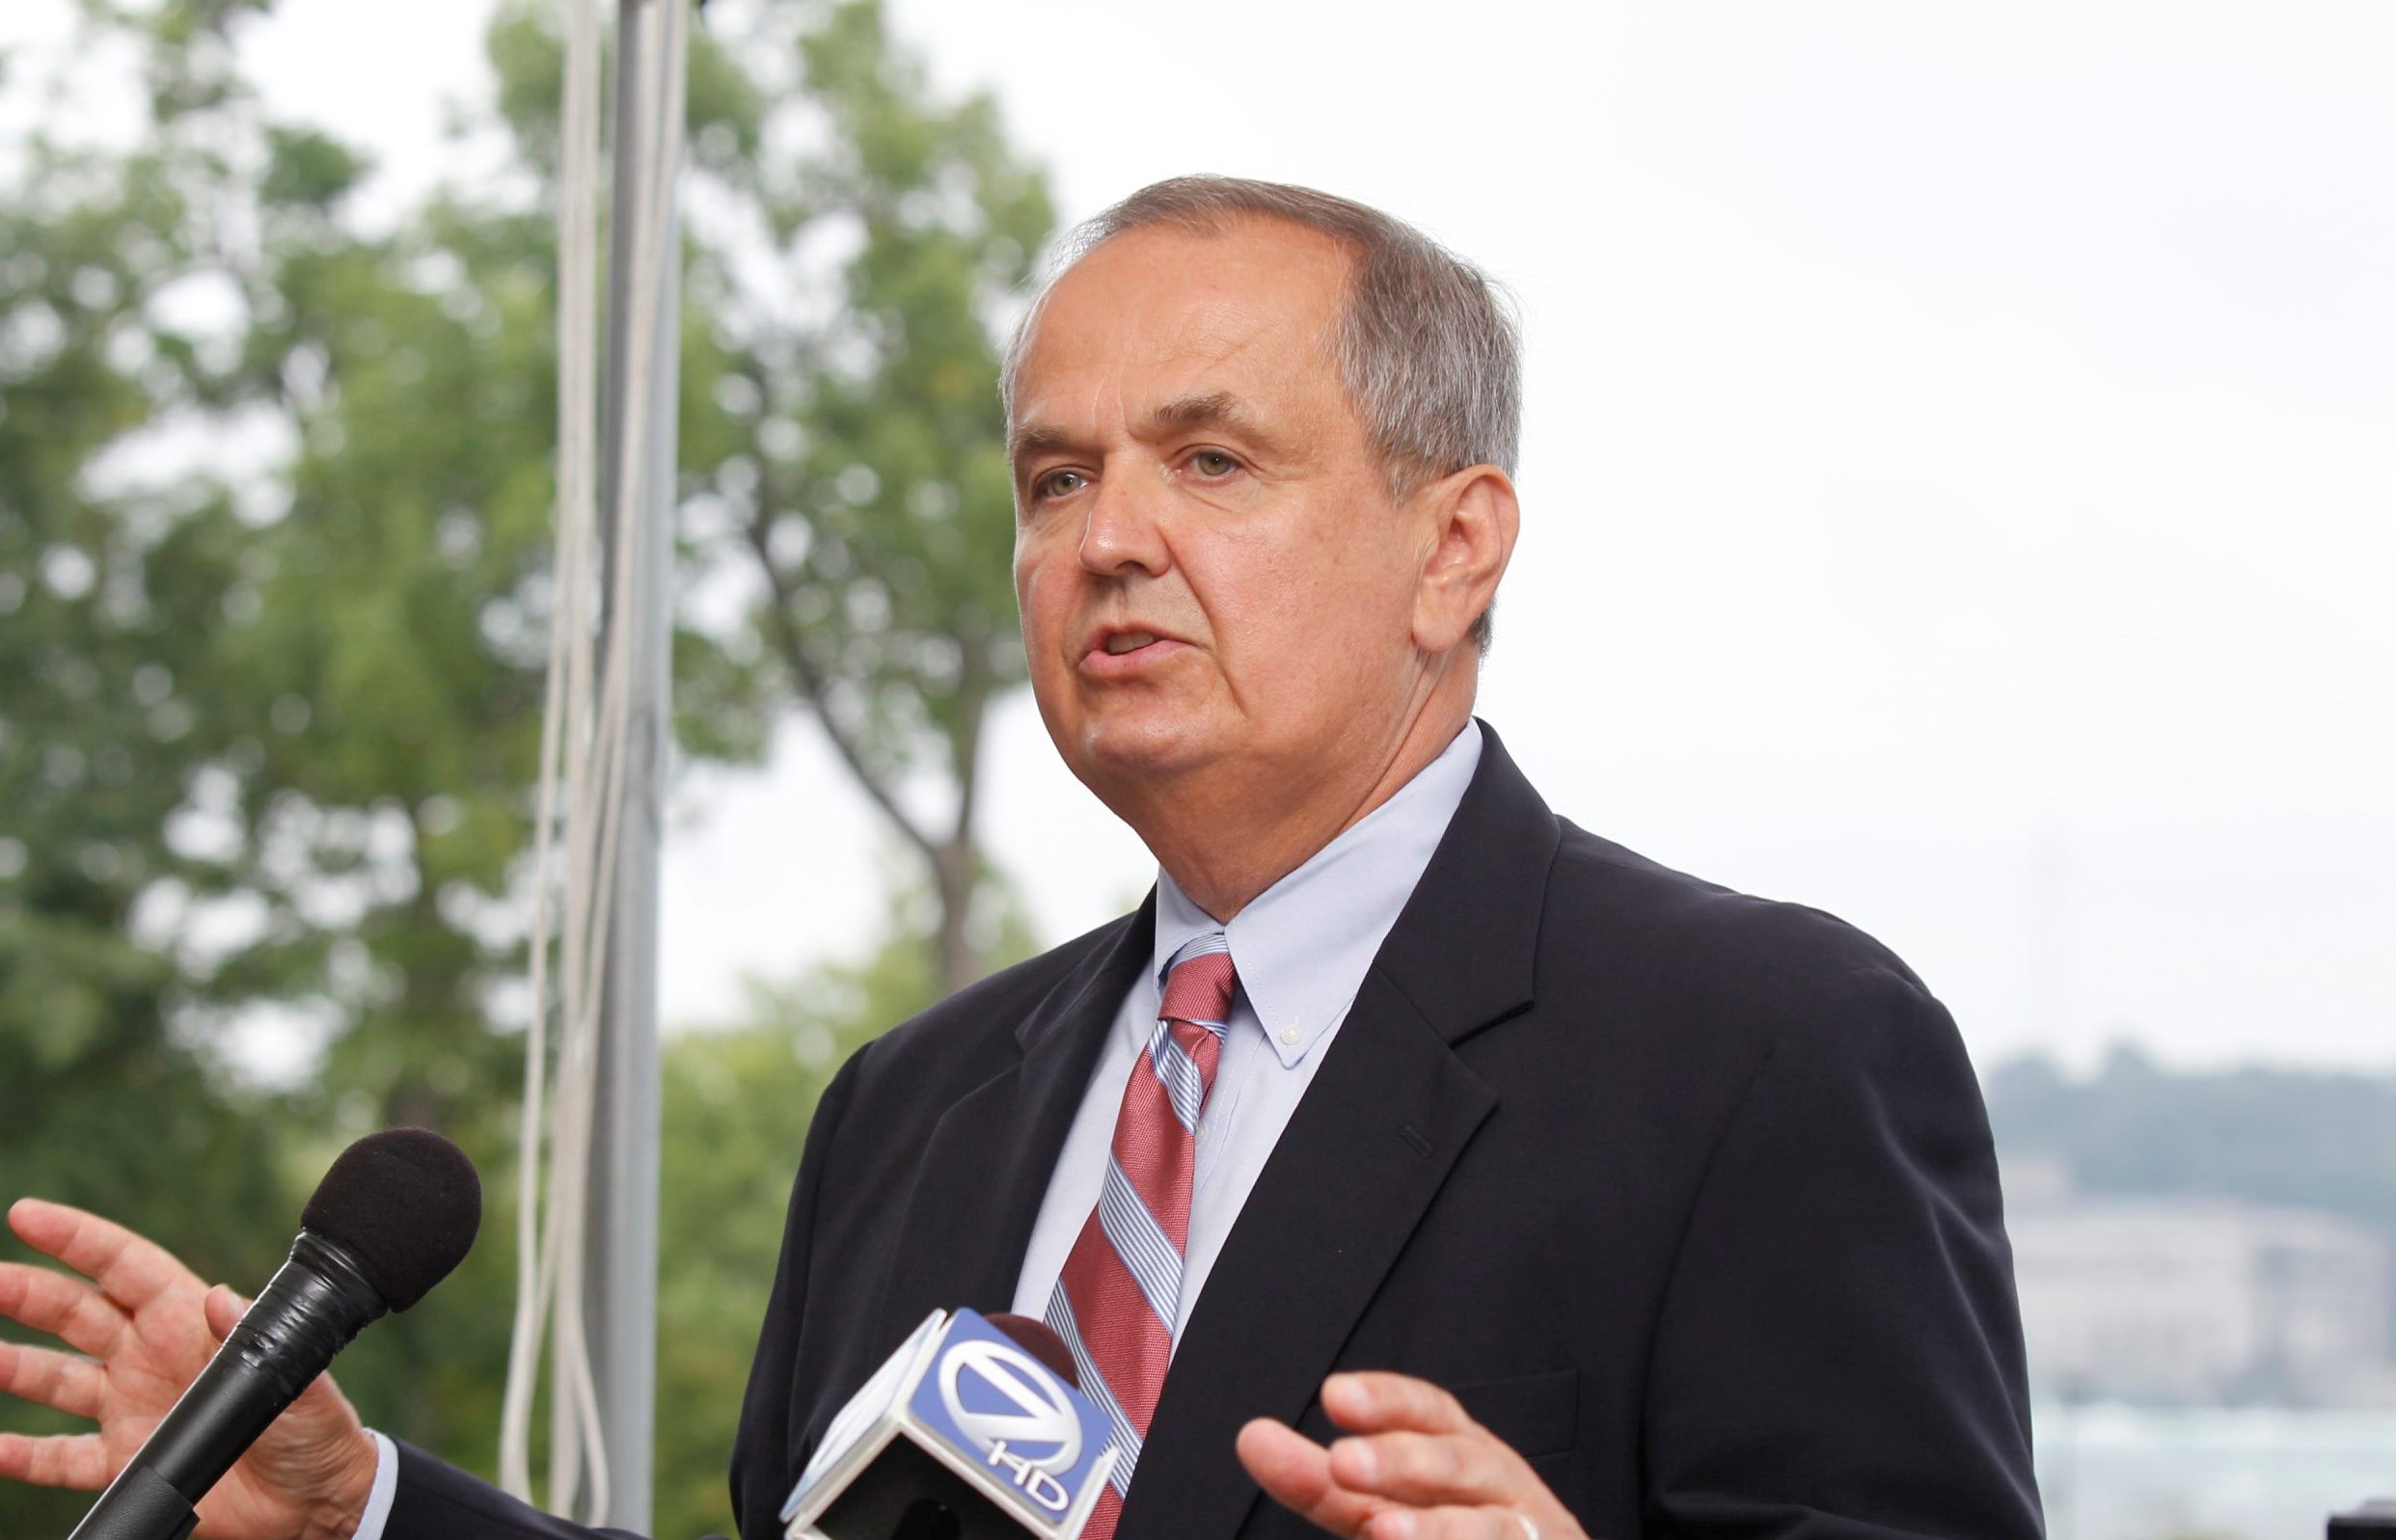 State Sen. George D. Maziarz left the Senate at the end of 2014, but he still has an open campaign fund, which as of July contained more than $742,000. (Buffalo News file photo)